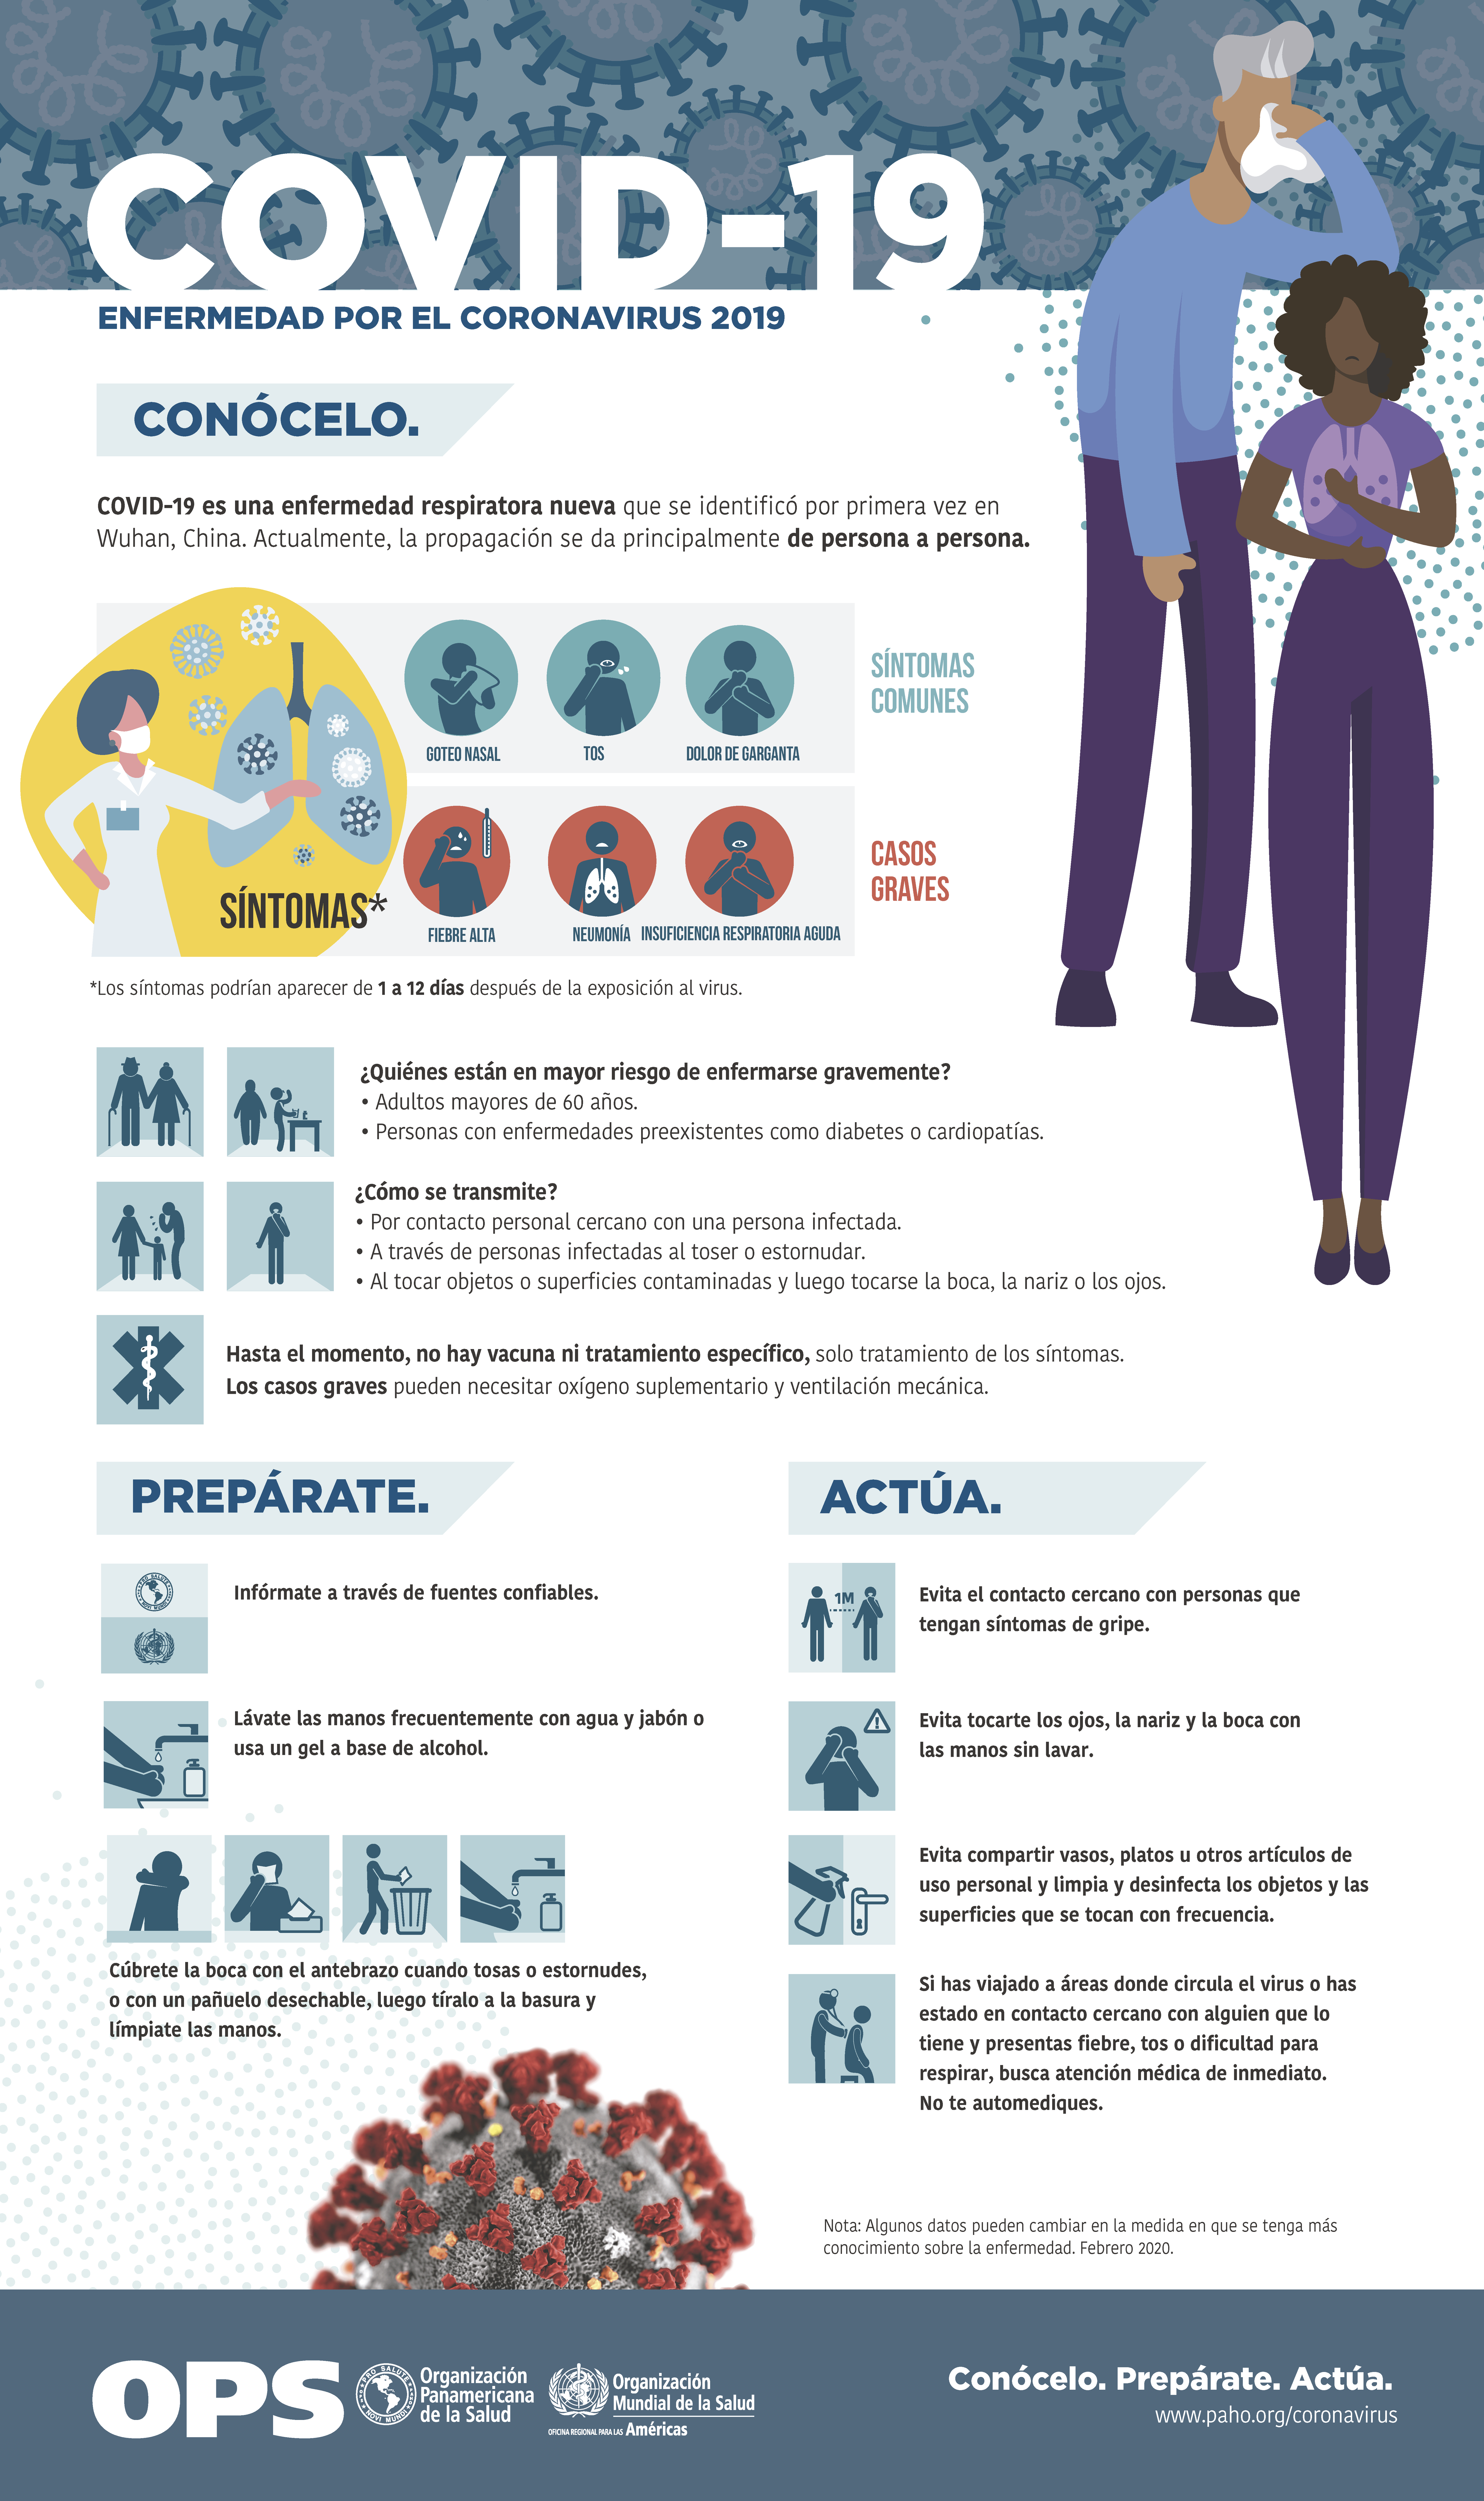 OPS-covid-19-infographic-es